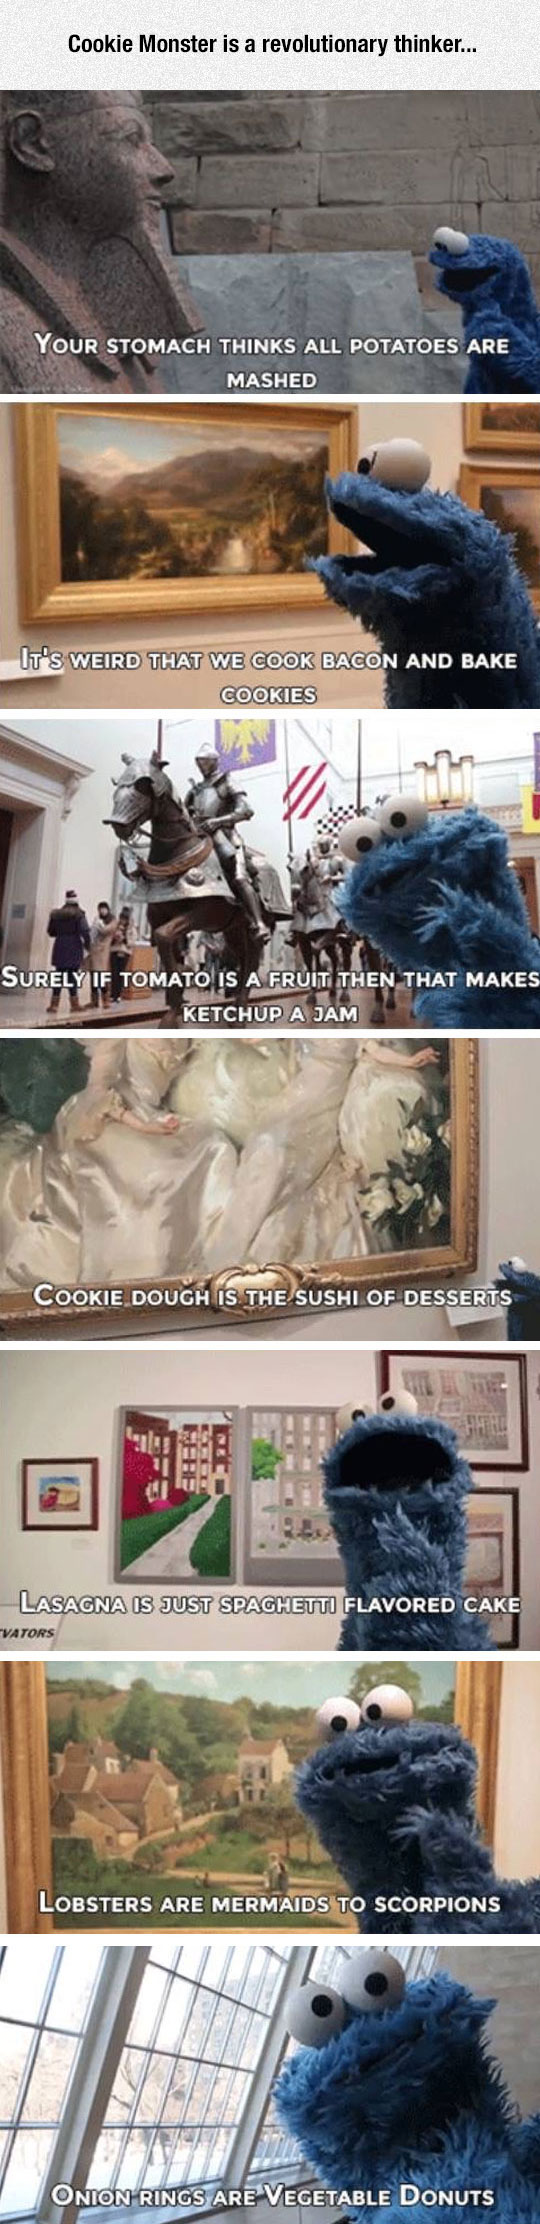 funny-Cookie-Monster-thoughts-thinker